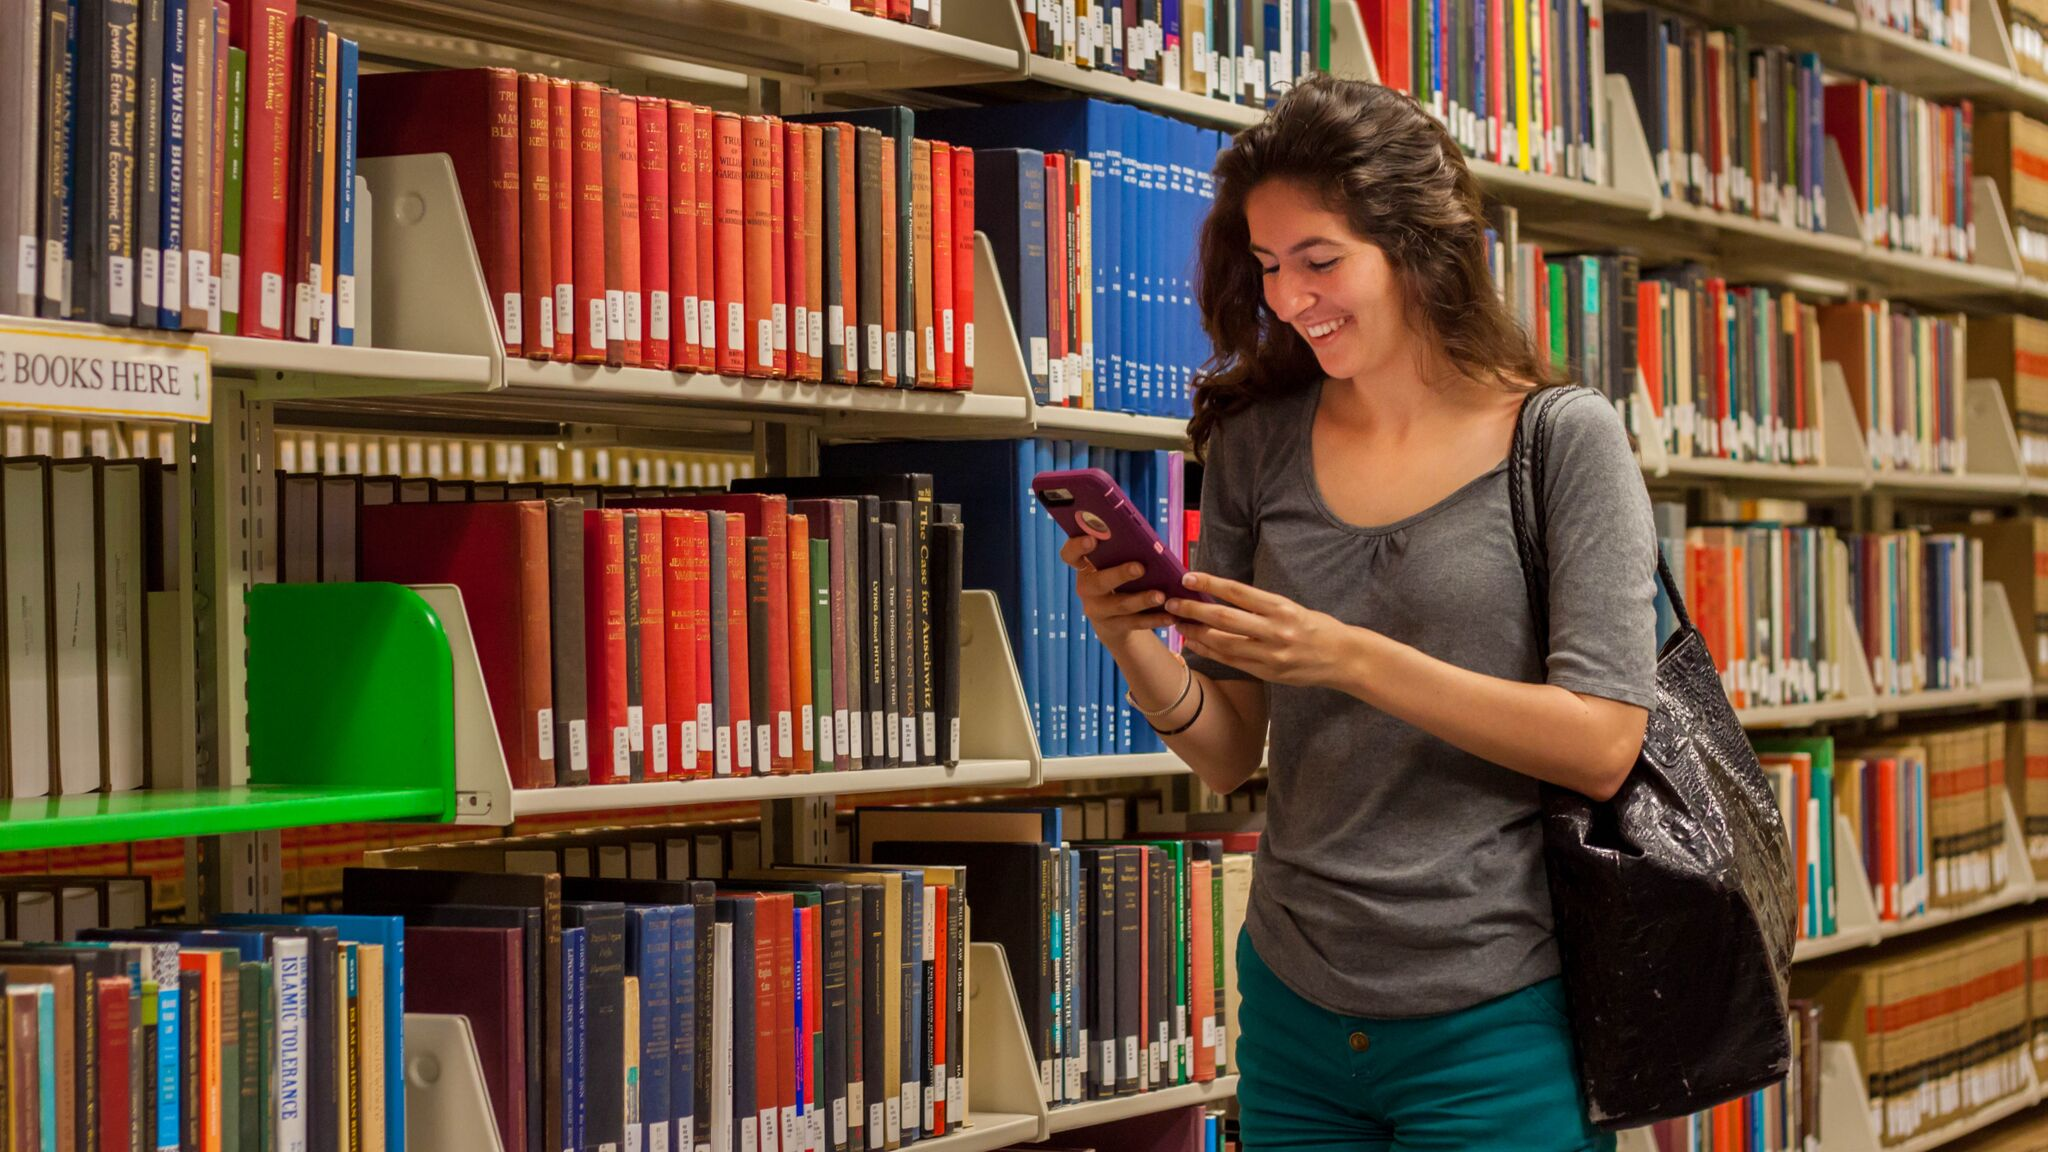 Student checking phone in library